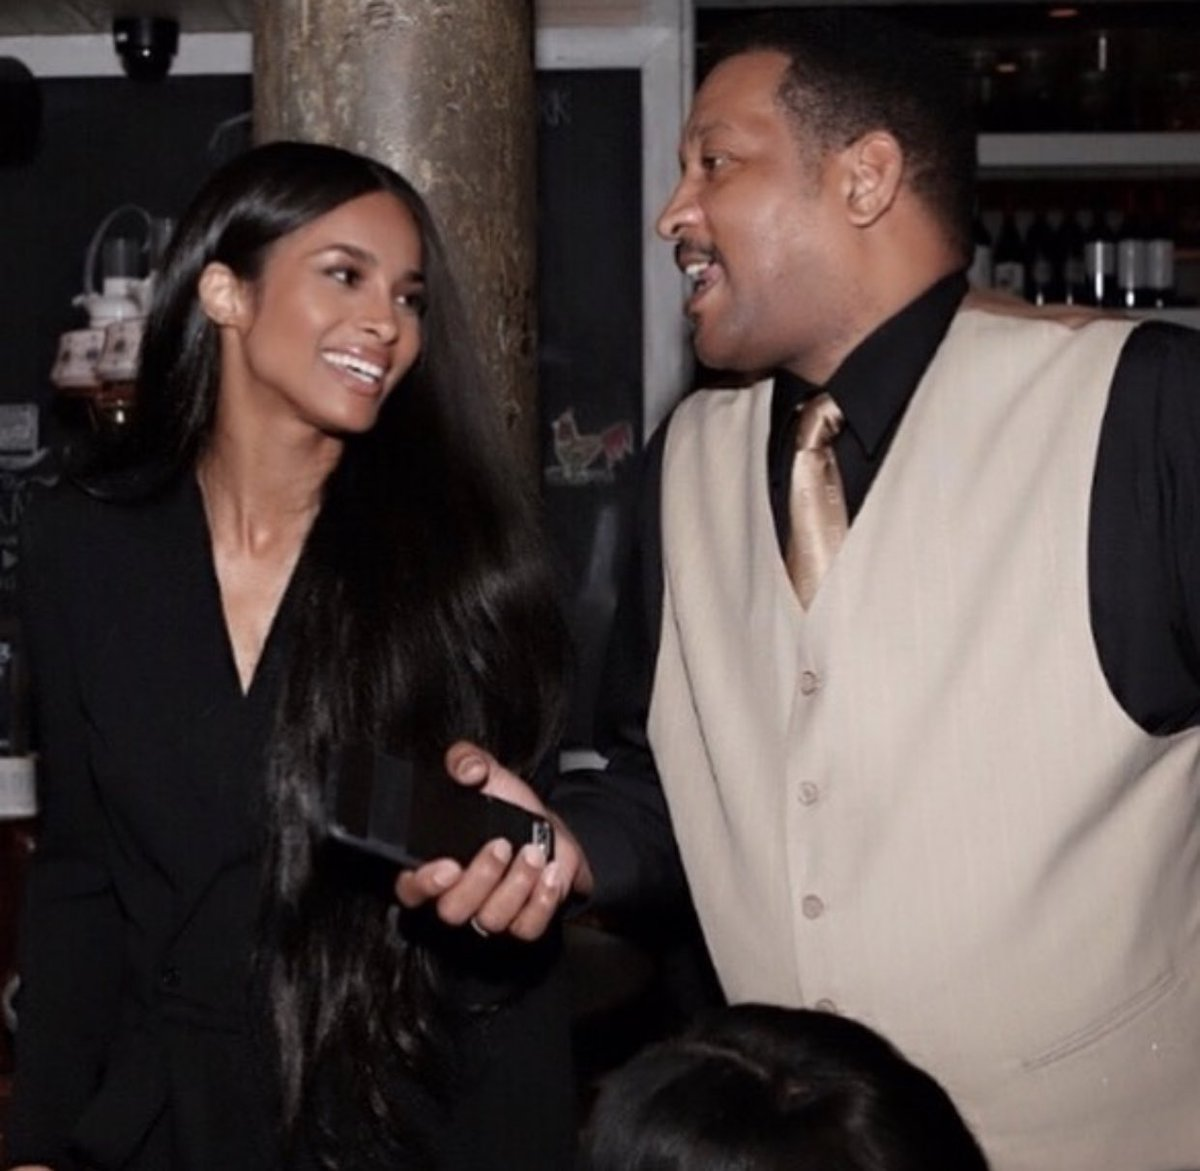 This is basically me and my Dad my whole life! Laughing and having the best times together. Daddy, I'm truly grateful for how you've loved me. You set the tone. You are the Best! Happy Fathers Day. #FathersDay #DaddysGirl🥰